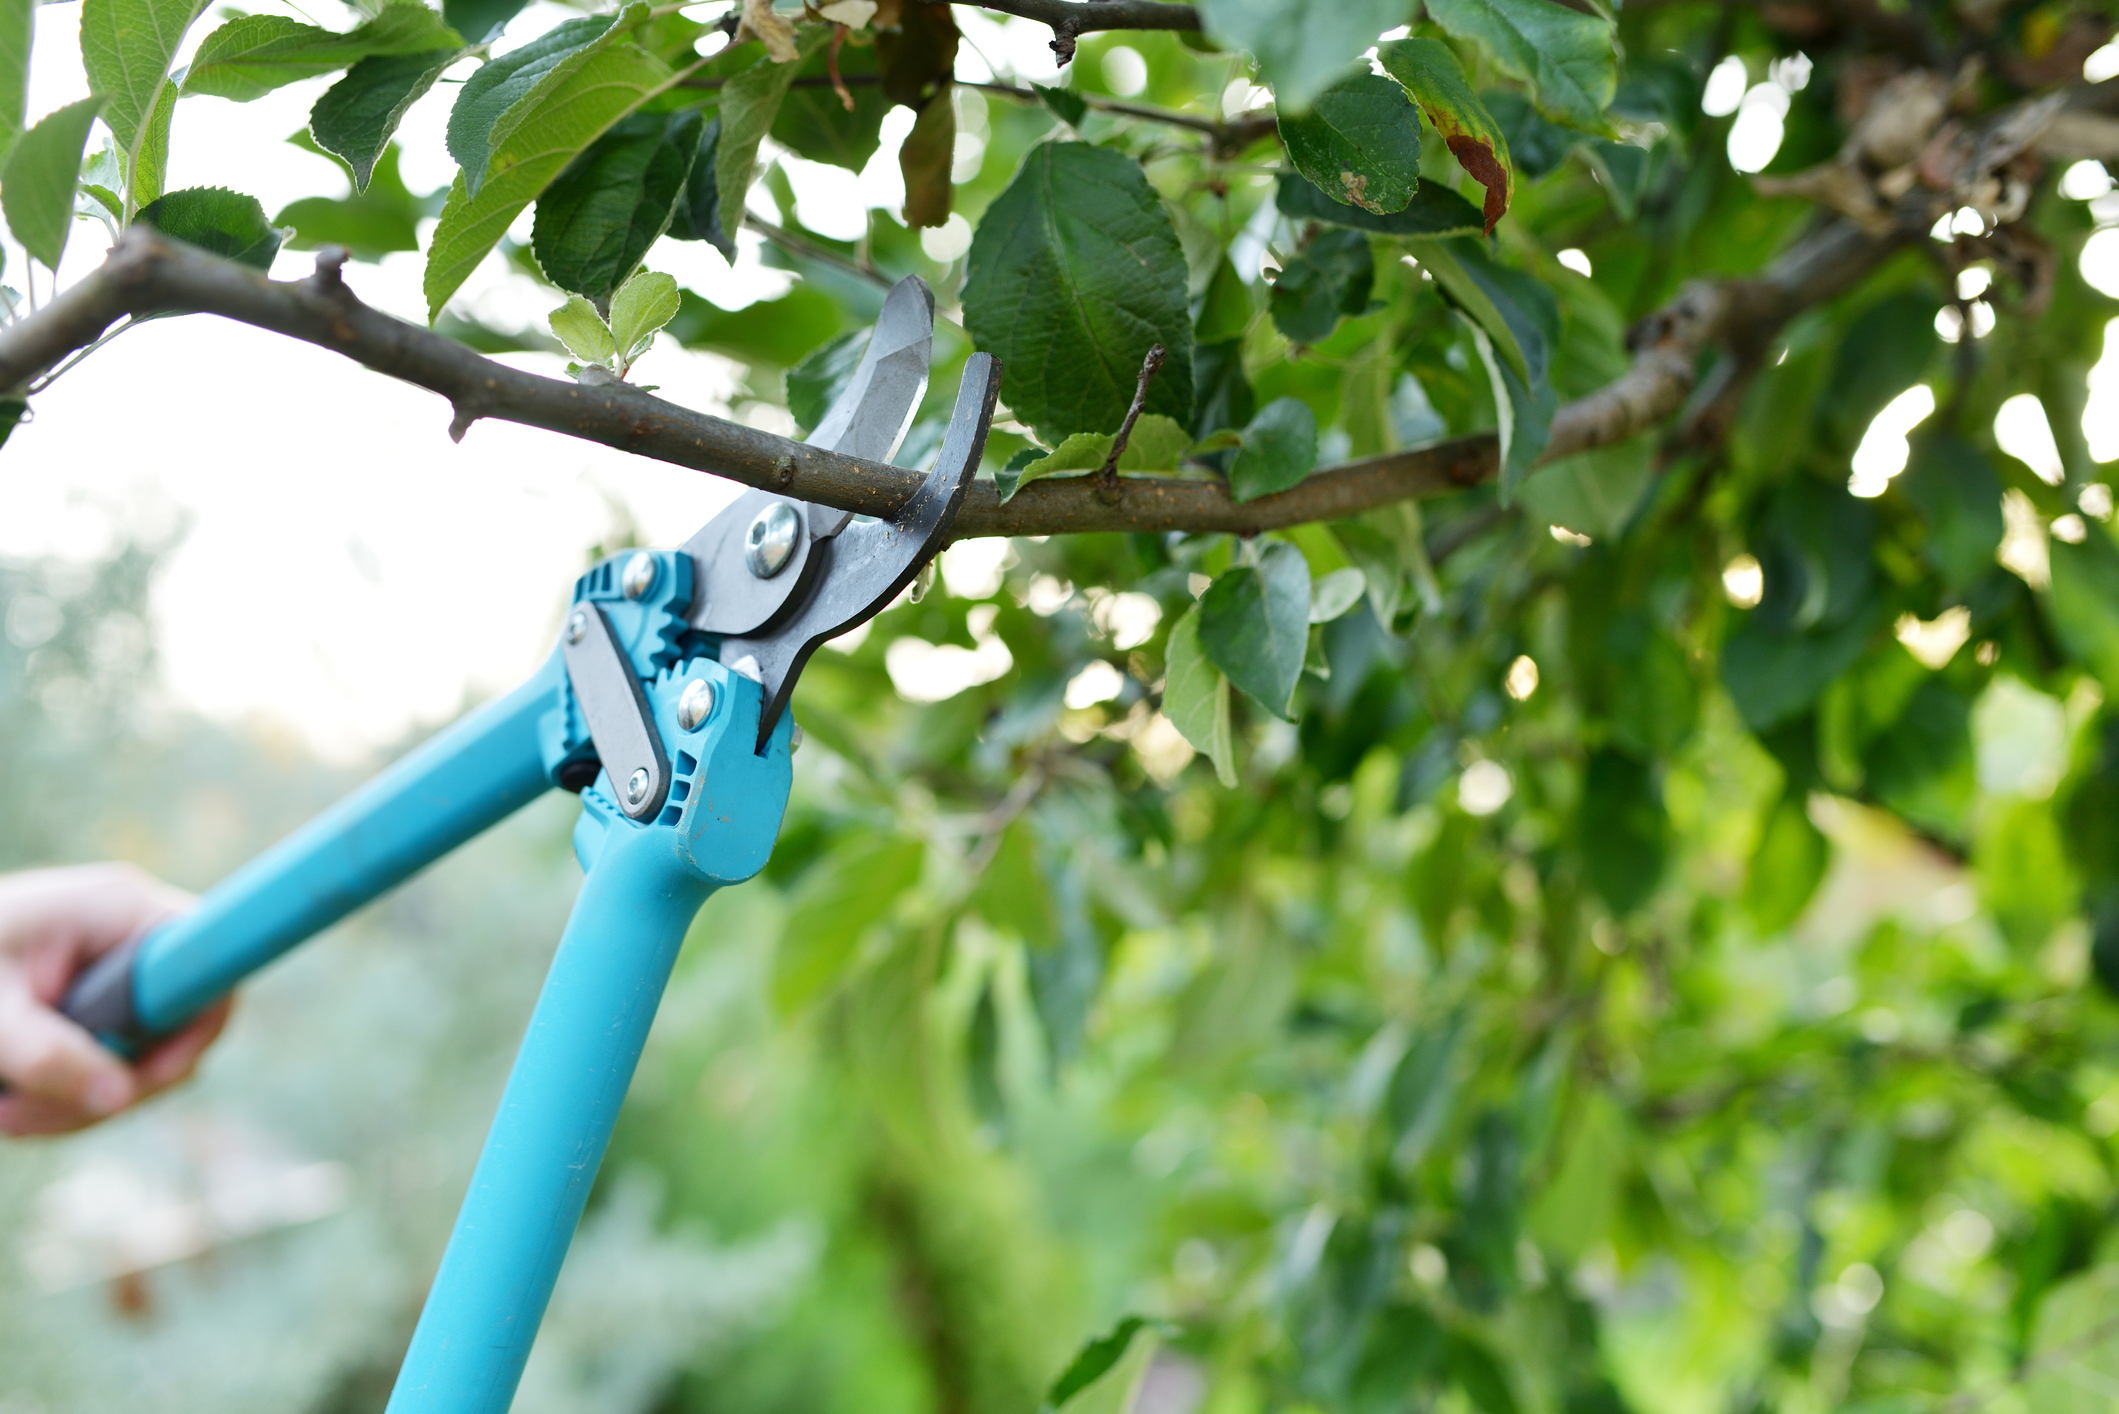 Pruning Trees in the Spring